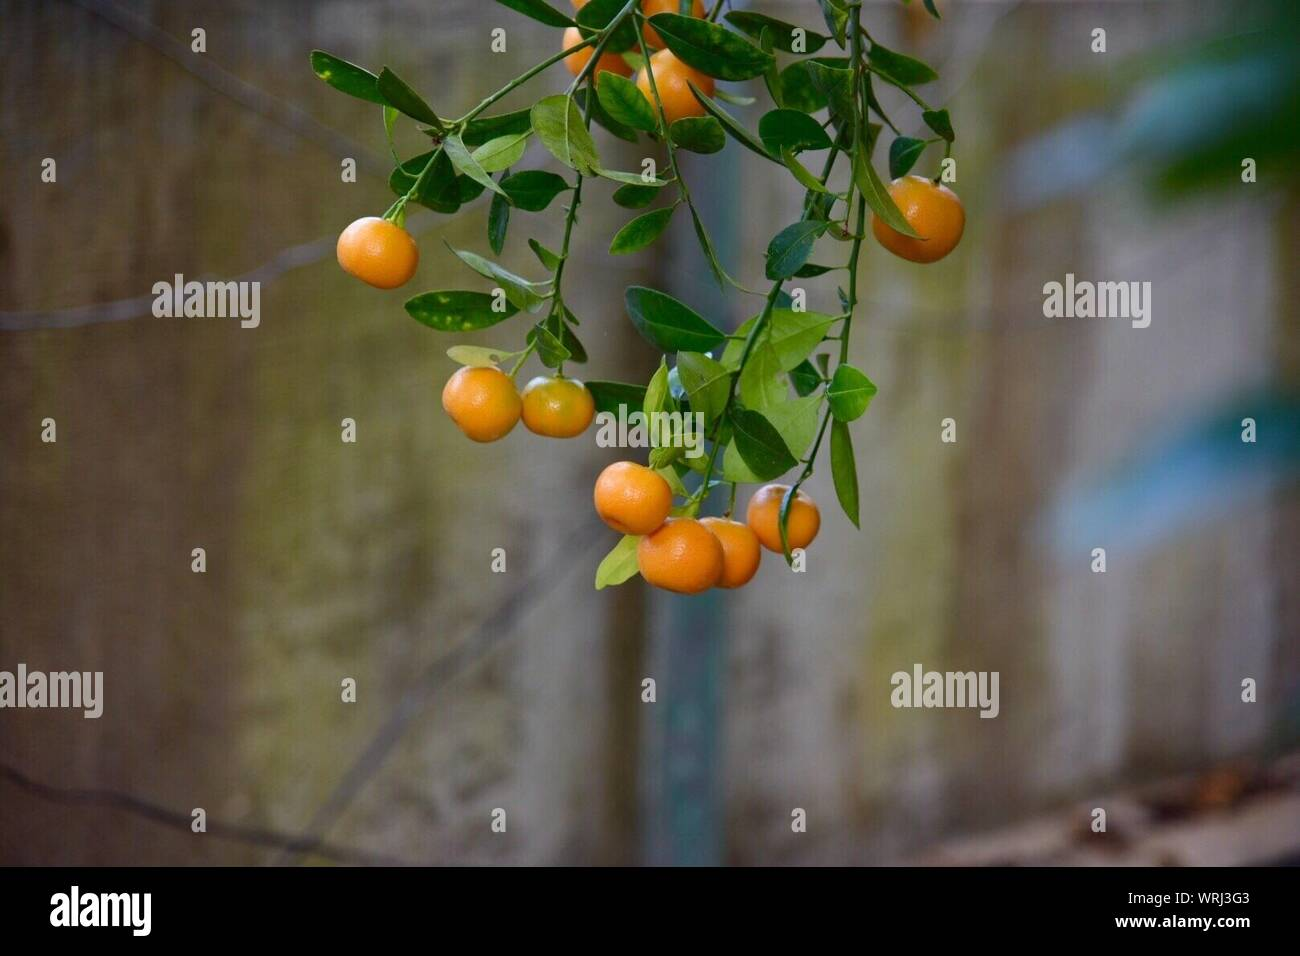 Close-up Of Oranges On Tree Stock Photo